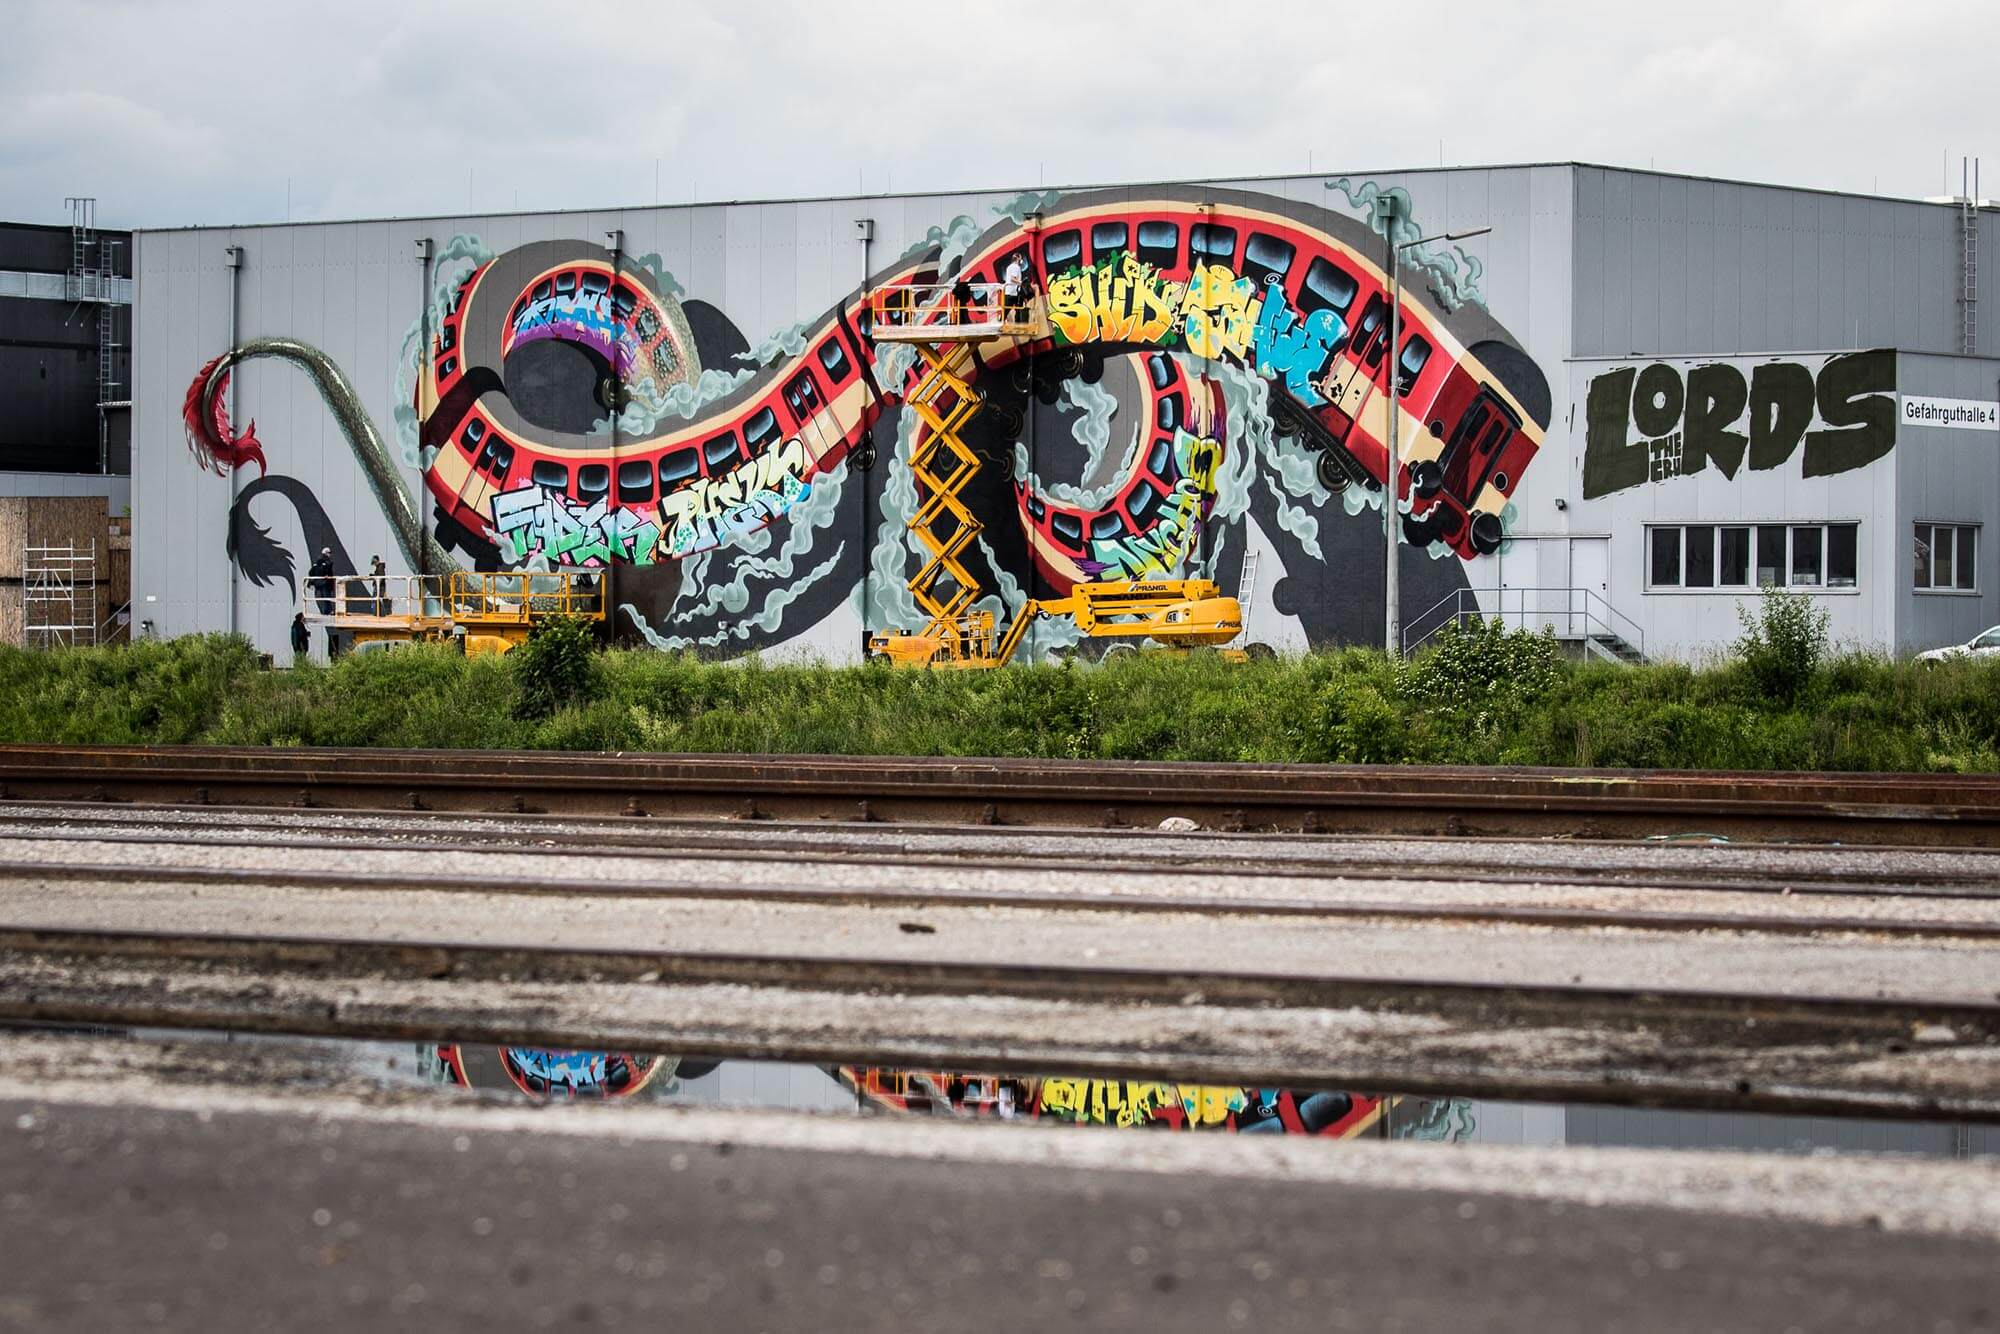 mural harbor graffiti linz the lords crew nychos robotics flap photography fotograf philipp greindl photographer